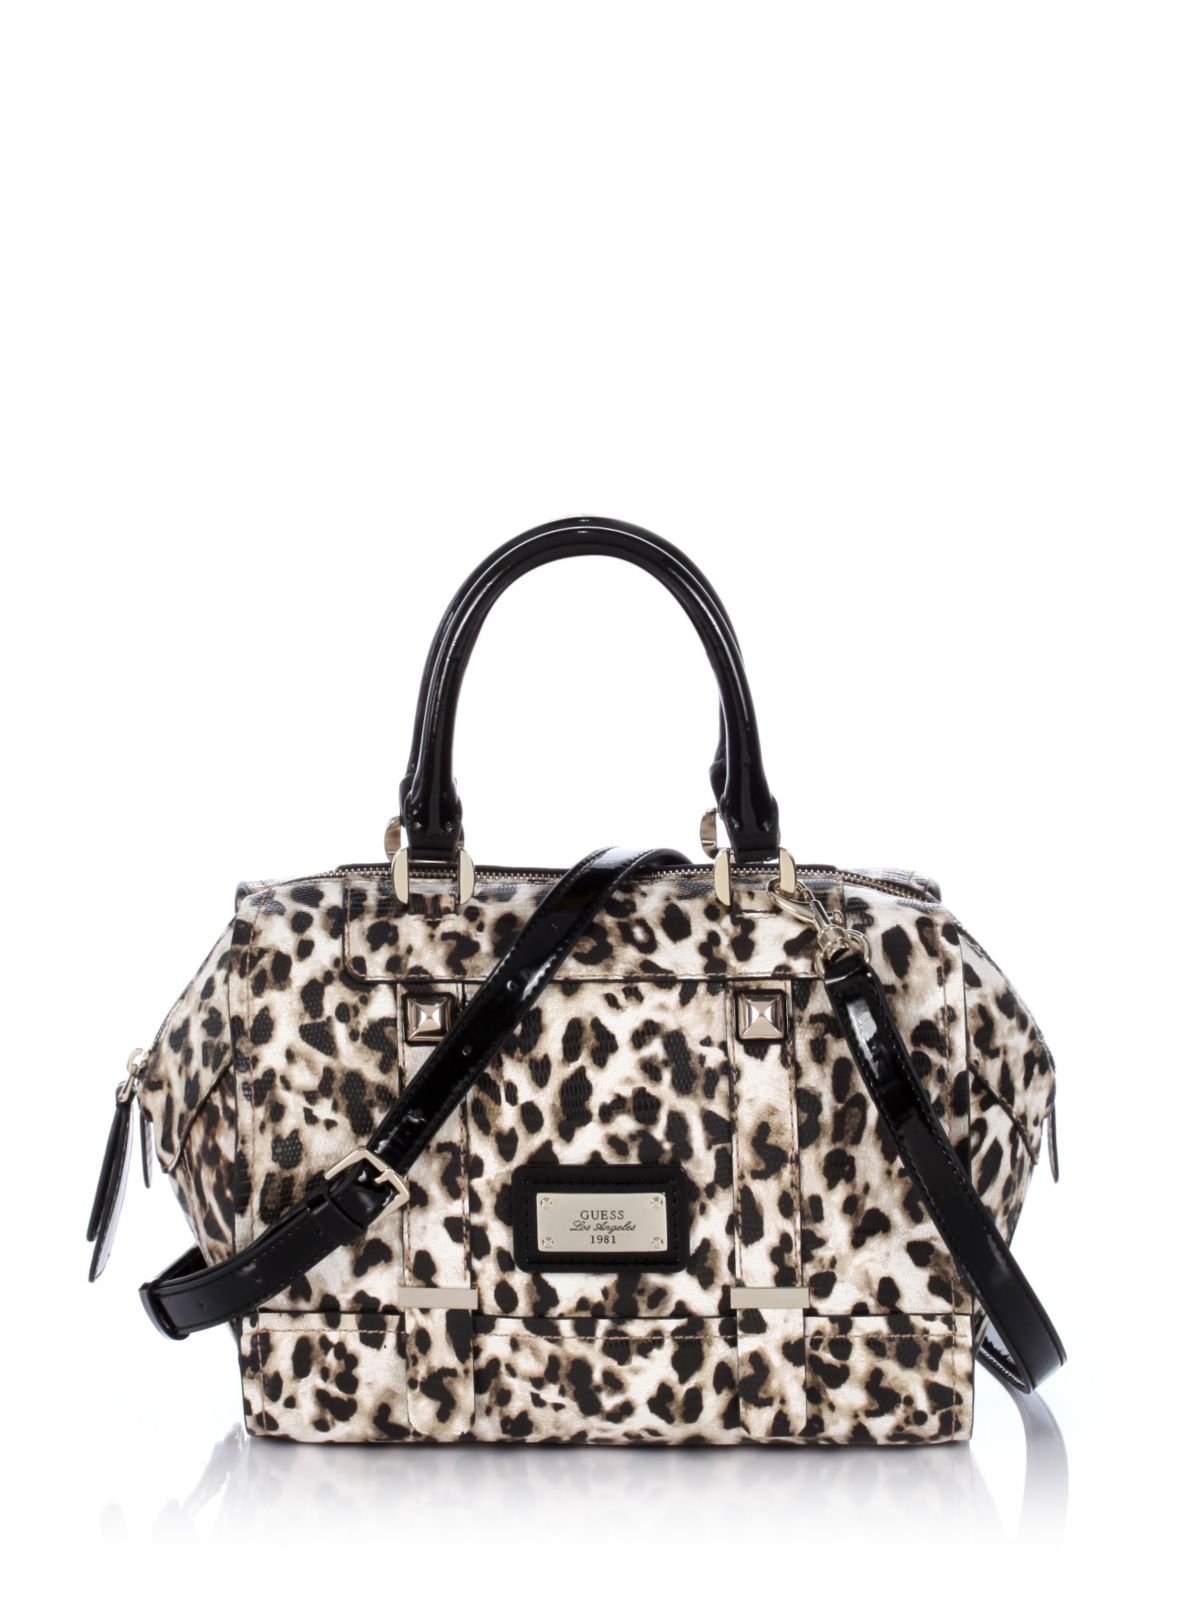 bc2928a91771 Guess Leopard Print Bag Stanford Center For Opportunity Policy In